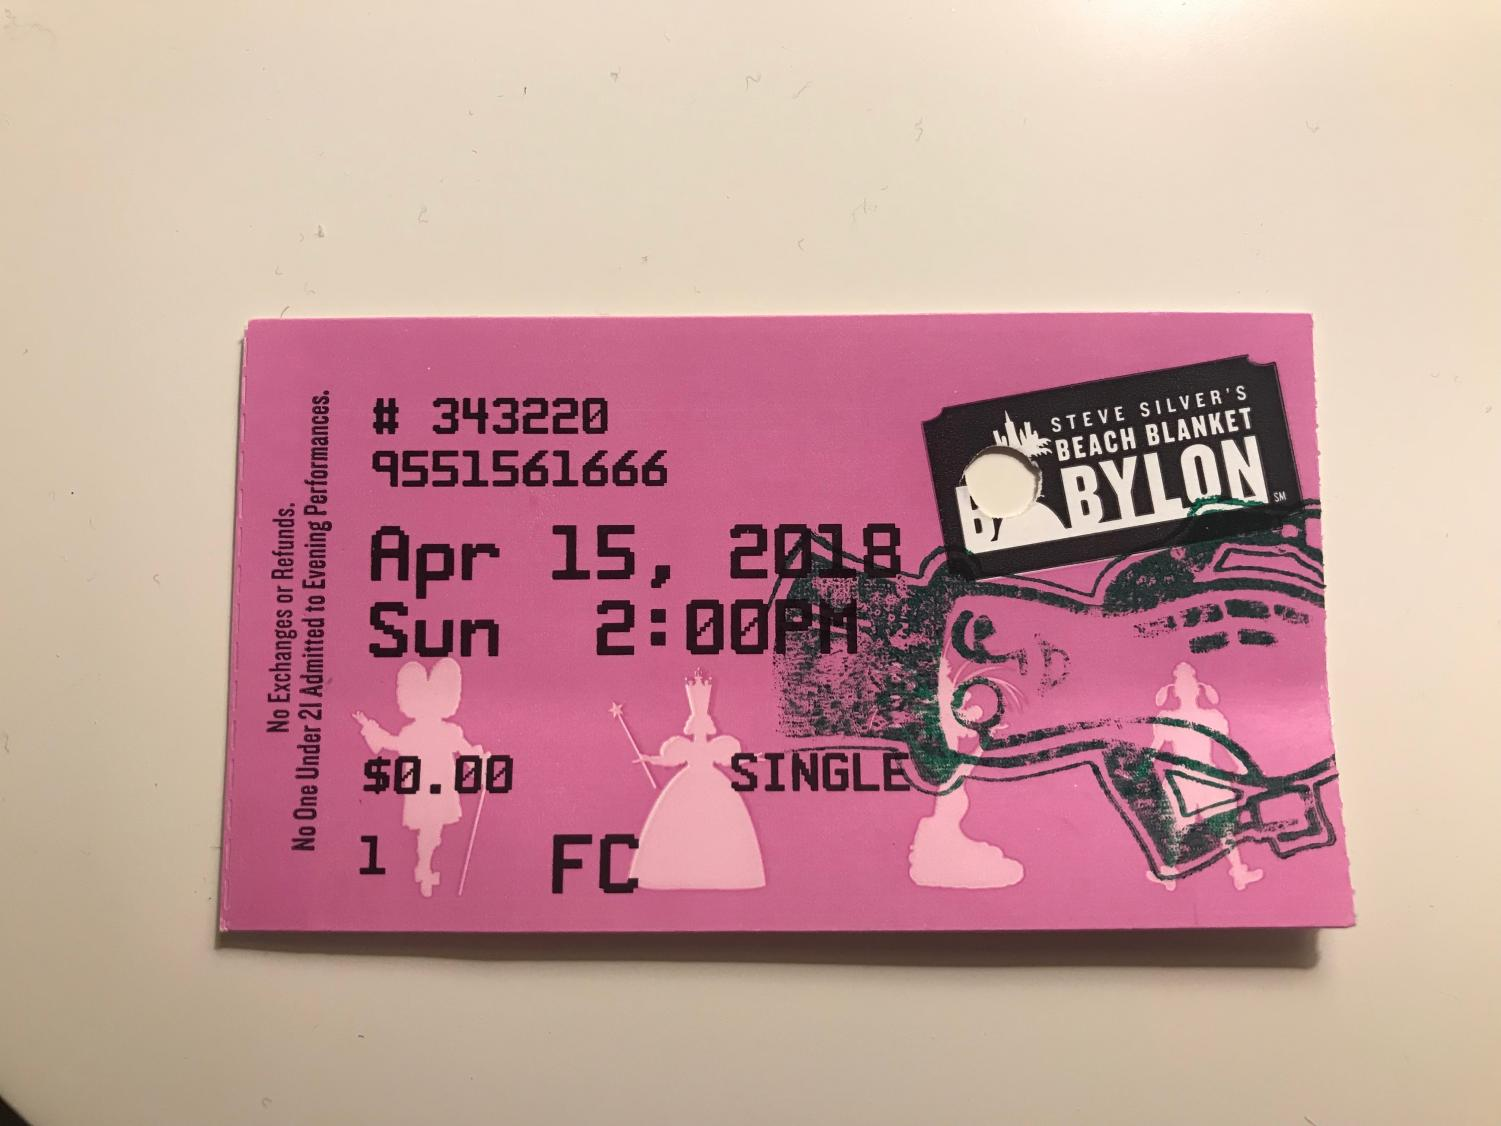 A ticket stub for the famous Beach Blanket Babylon